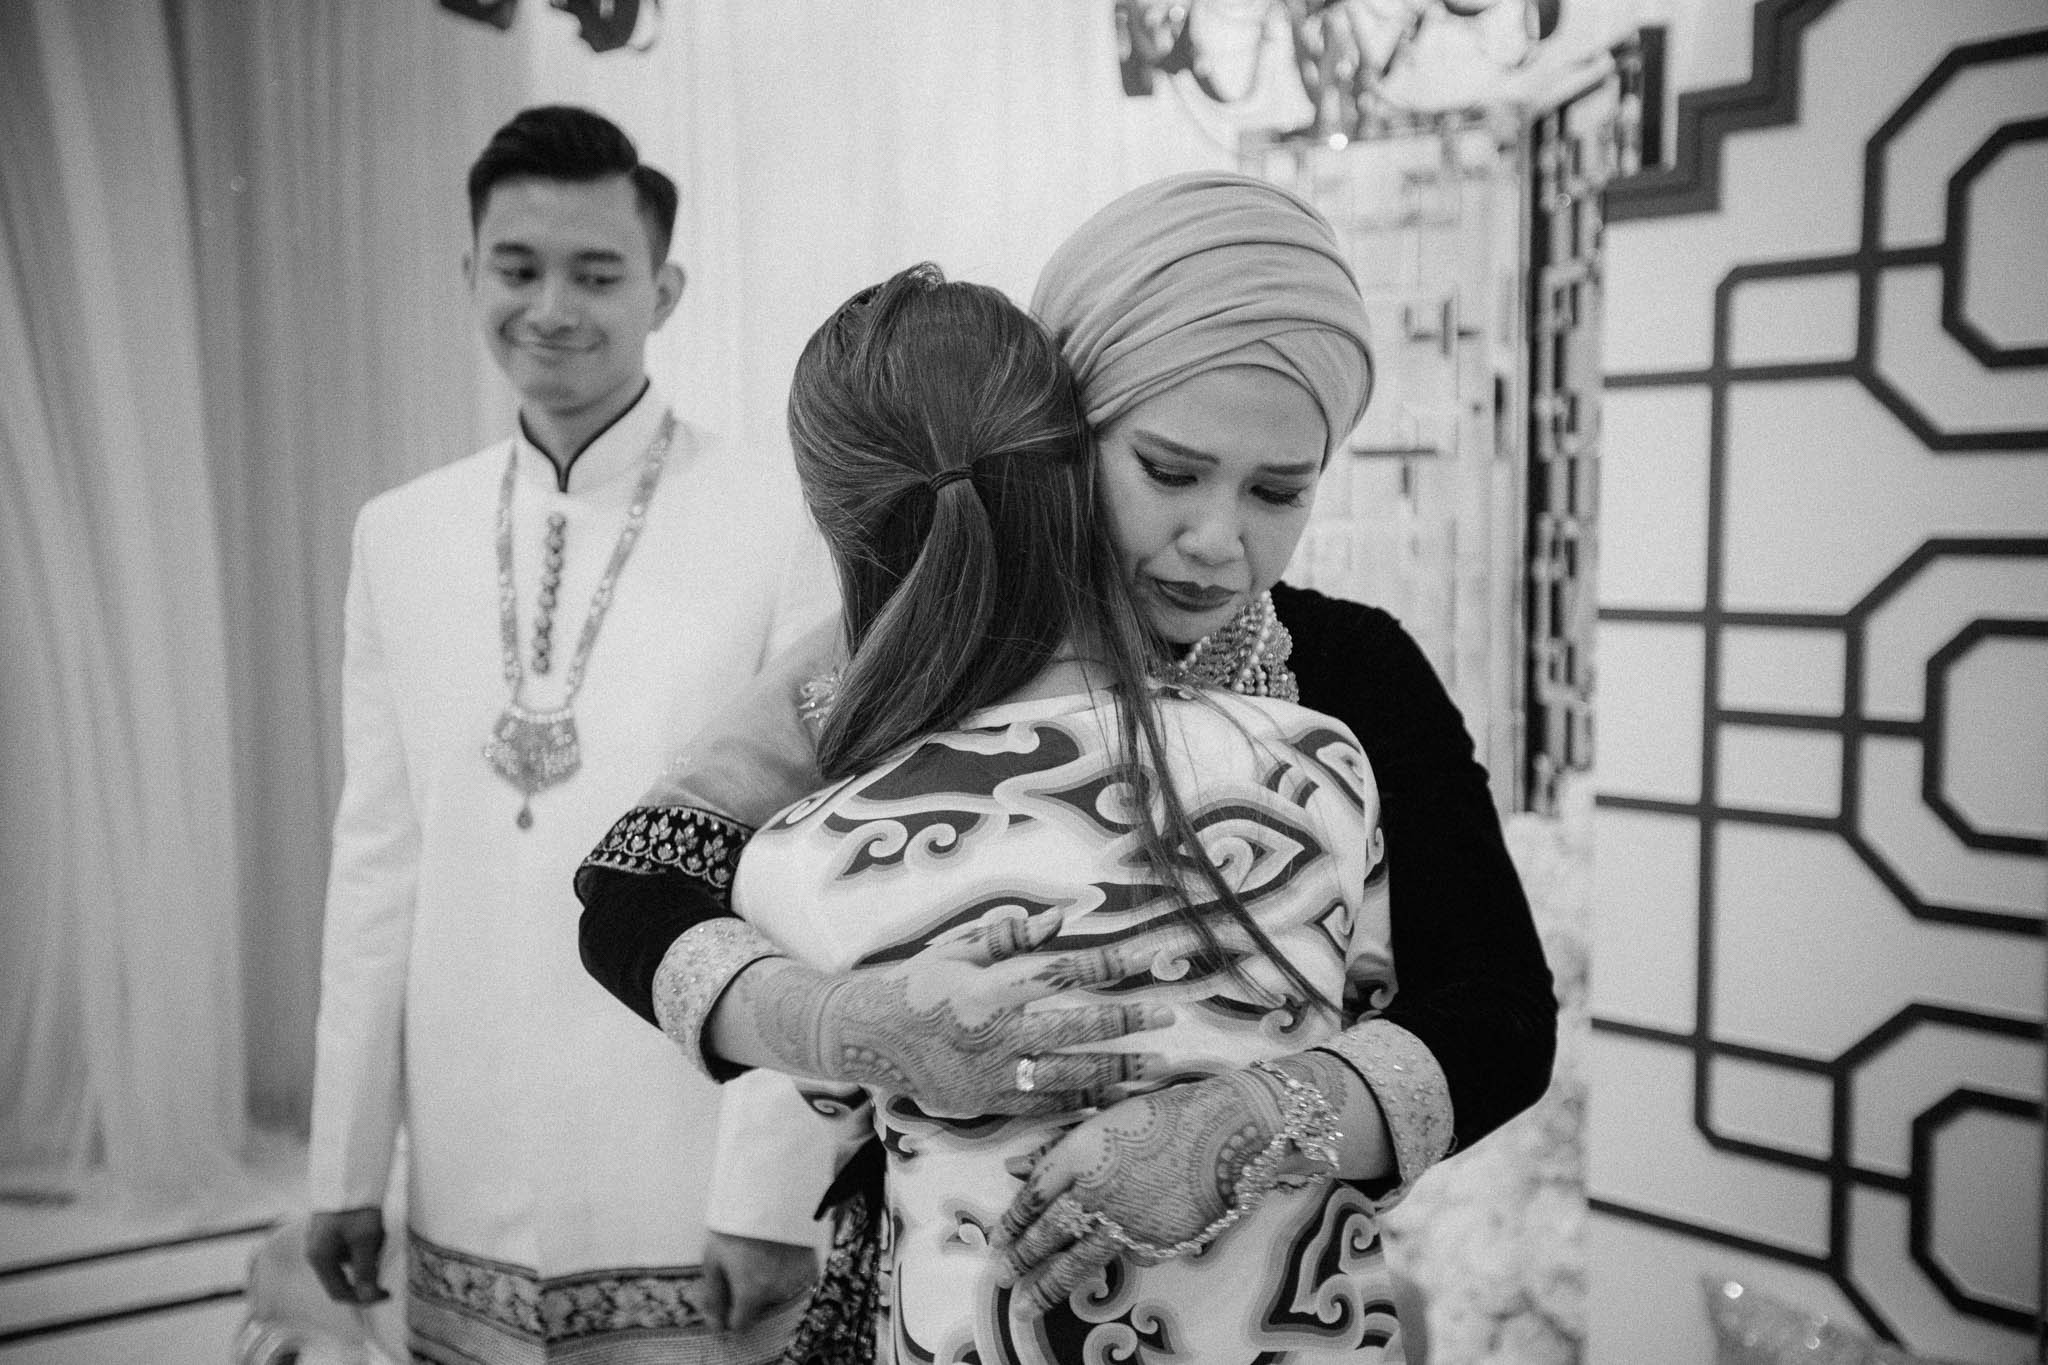 singapore-wedding-photographer-we-made-these-2016-selects-057.jpg